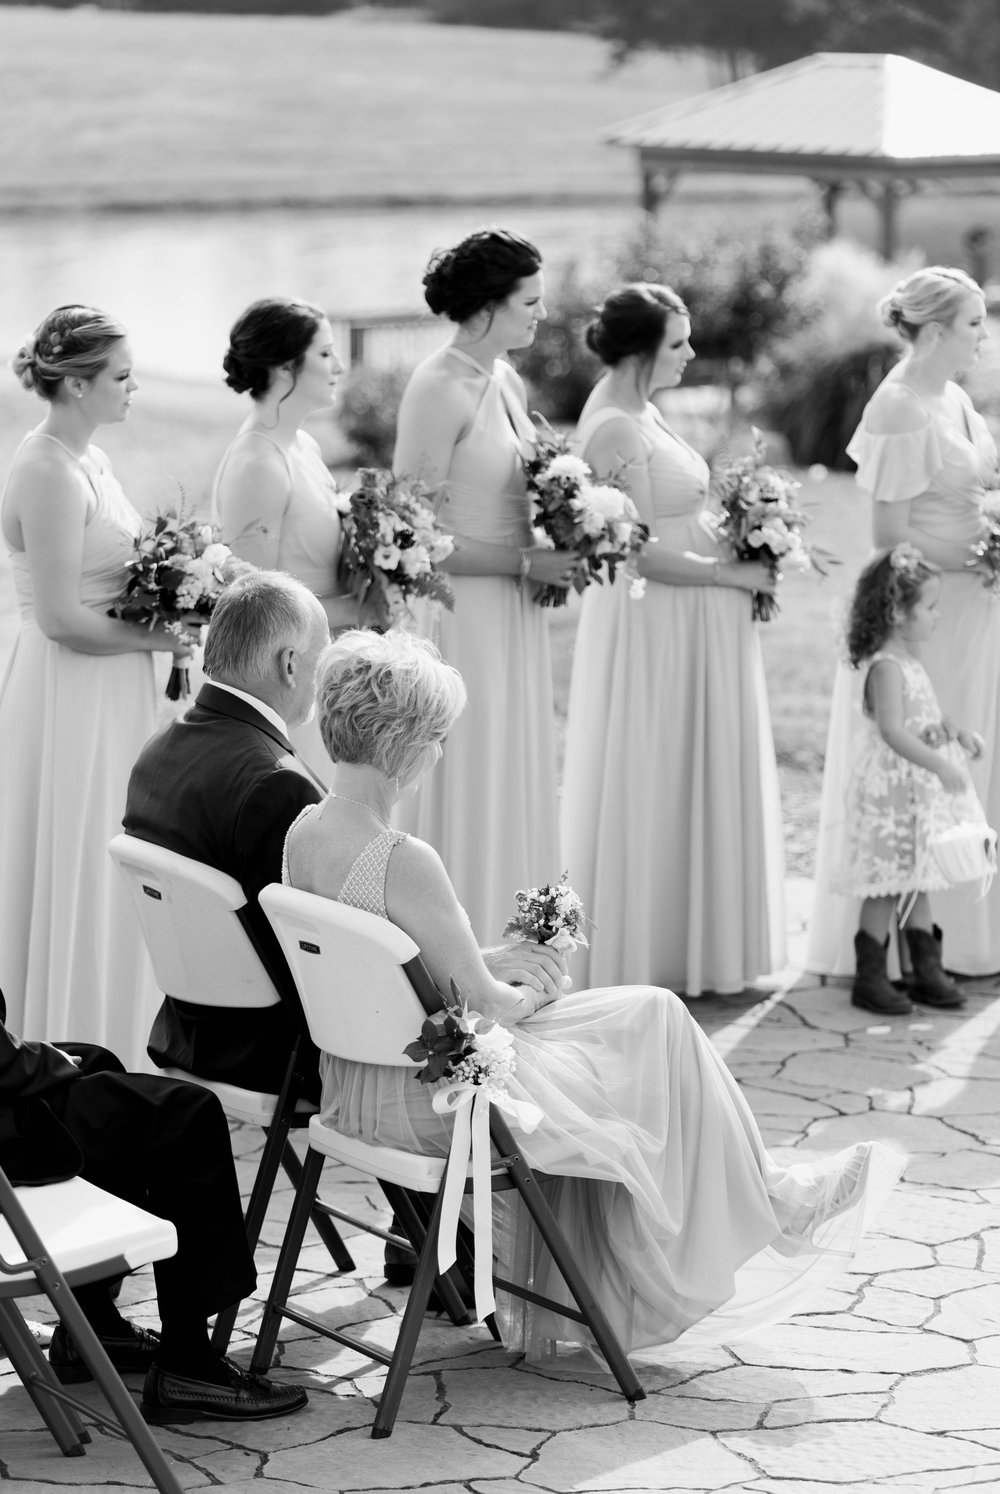 atkinson farms_VirginiaWeddingPhotographer_LynchburgWeddingPhotographer_DylanandLauren 9.jpg